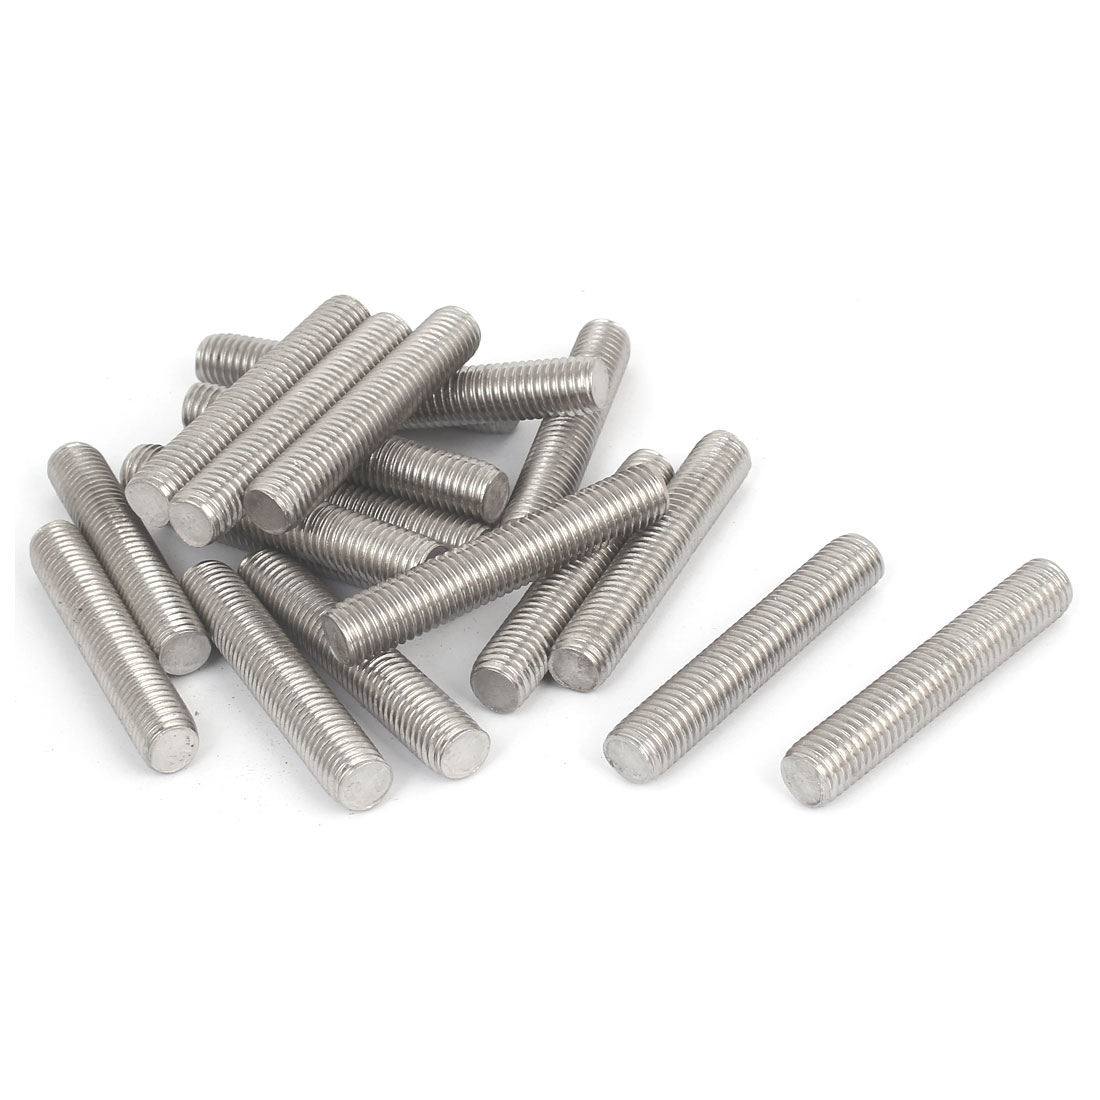 M12-x-70mm-304-Stainless-Steel-Right-Hand-Thread-Fully-Threaded-Rod-Stud-20PCS